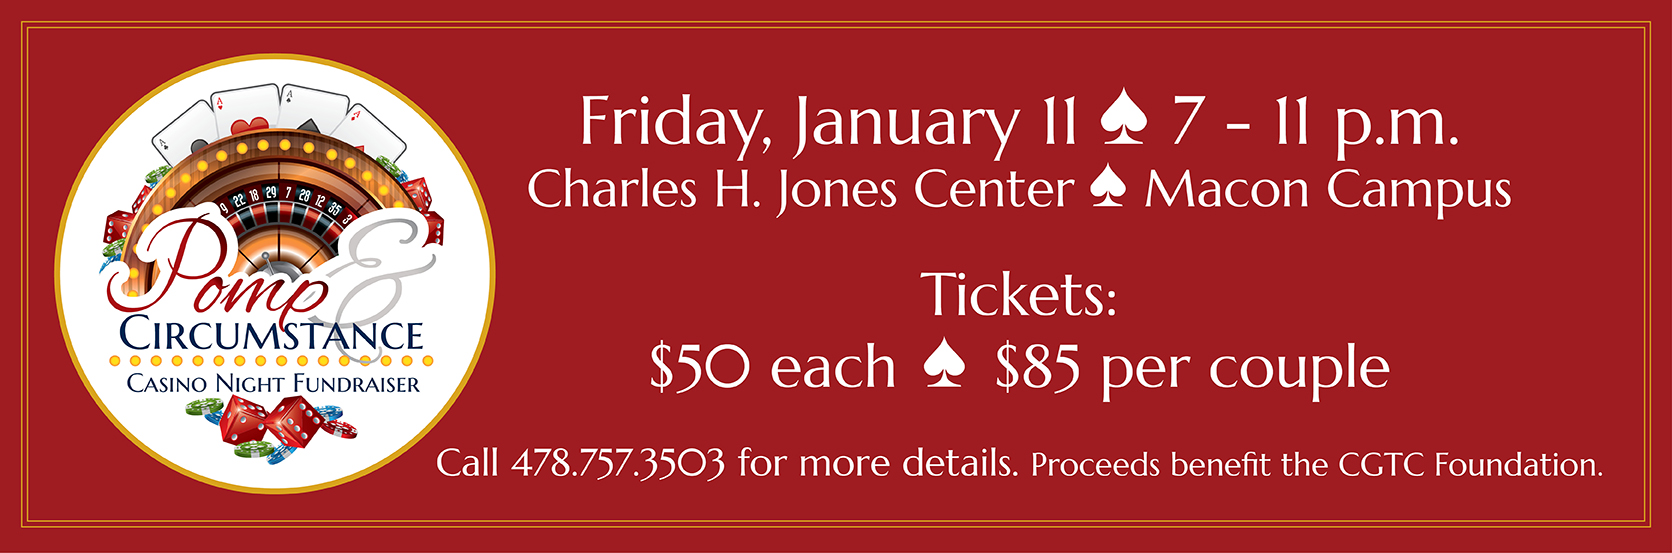 The CGTC Foundation and Parrish Construction present the Pomp and Circumstance: Casino Night Fundraiser January 11, 2019 on the Macon campus Charles H. Jones Advanced Technology Center from 7 p.m. to 11 p.m. Contact the Foundation office at 478.757.3503 for more information.